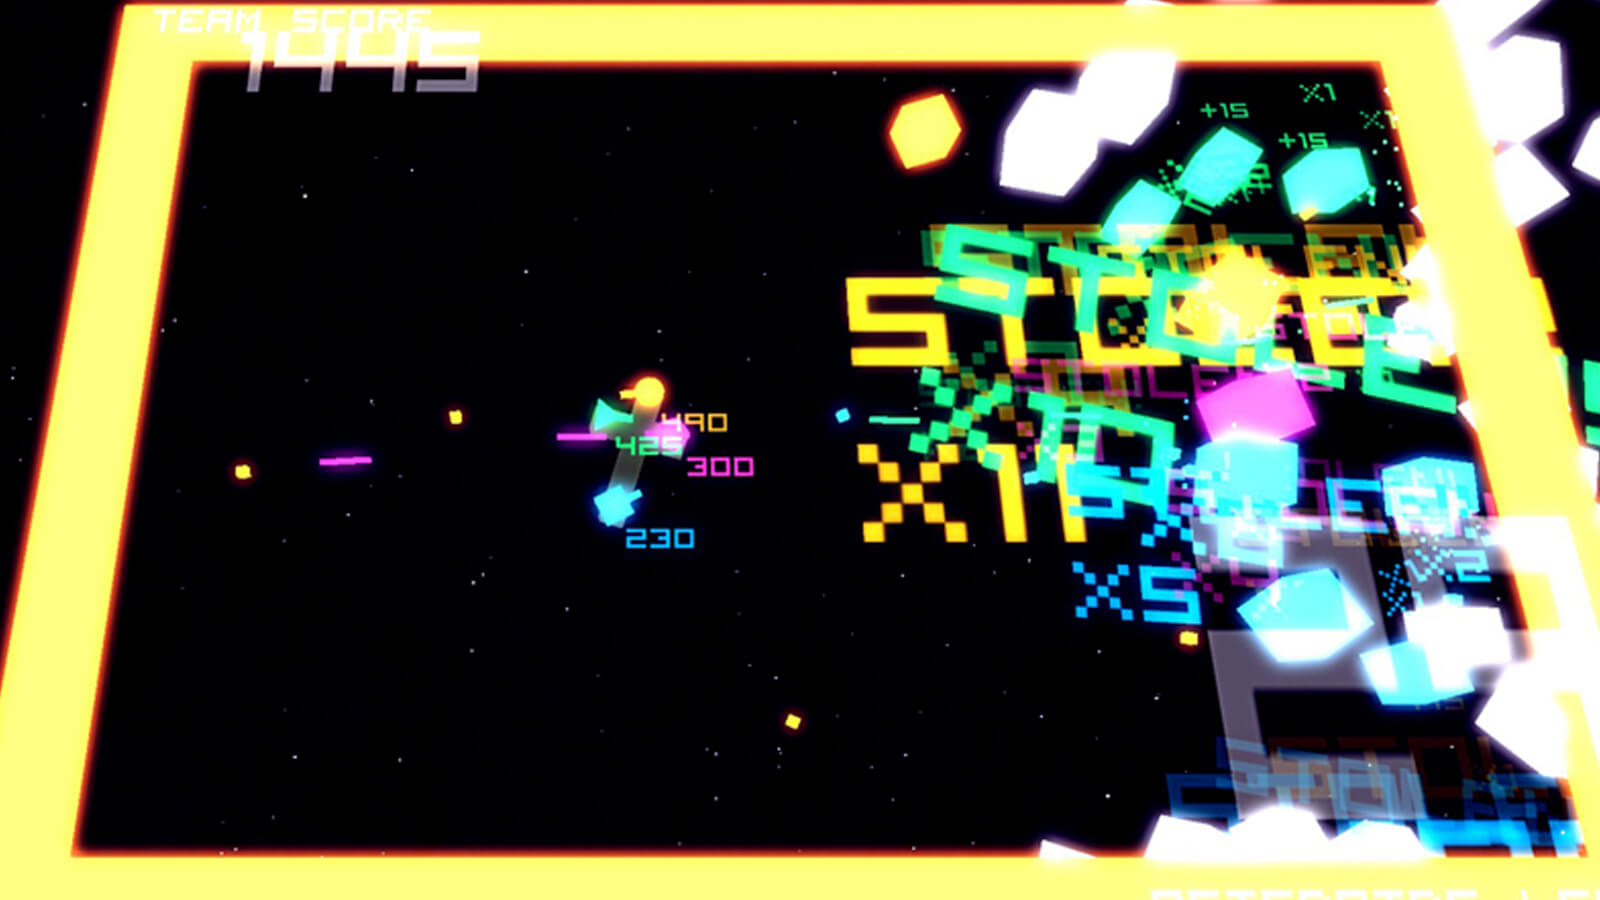 A fleet of glowing cubes approach the players' space ship.